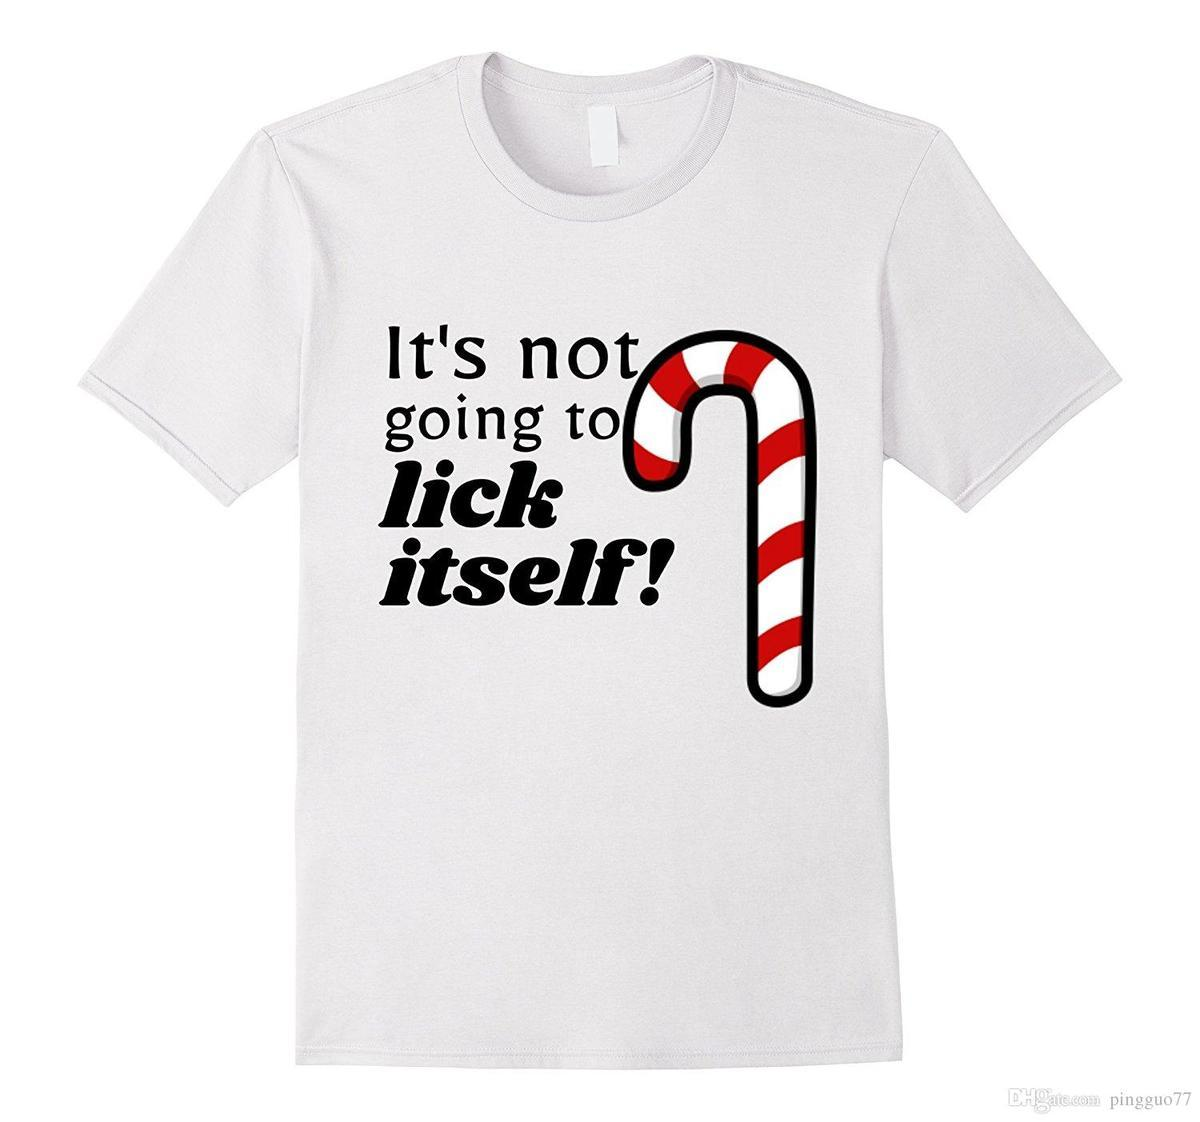 Christmas Adult Funny Candy Cane Lick T Shirt Humor New Funny Brand  Clothing Top TeePrint Tee Shirts Summer Short Shirts With Designs R Shirt  From Lijian59, ...